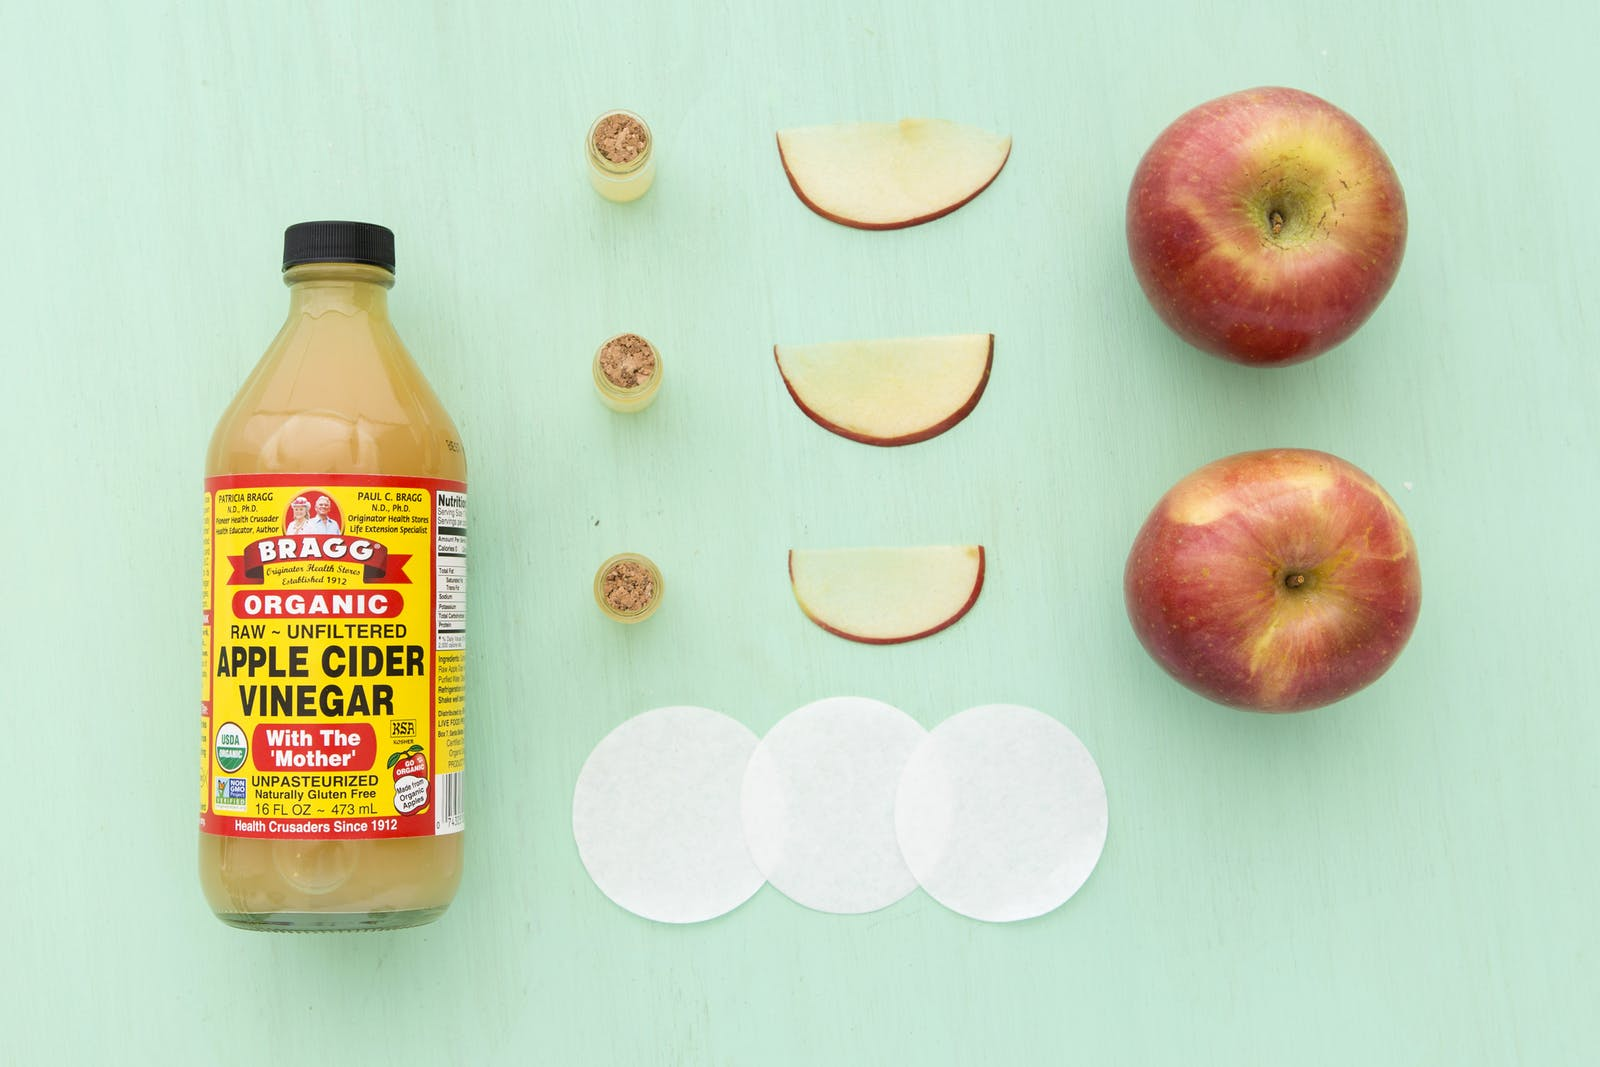 Beauty_Beth_Apple_Cider_Vinegar_03.jpg